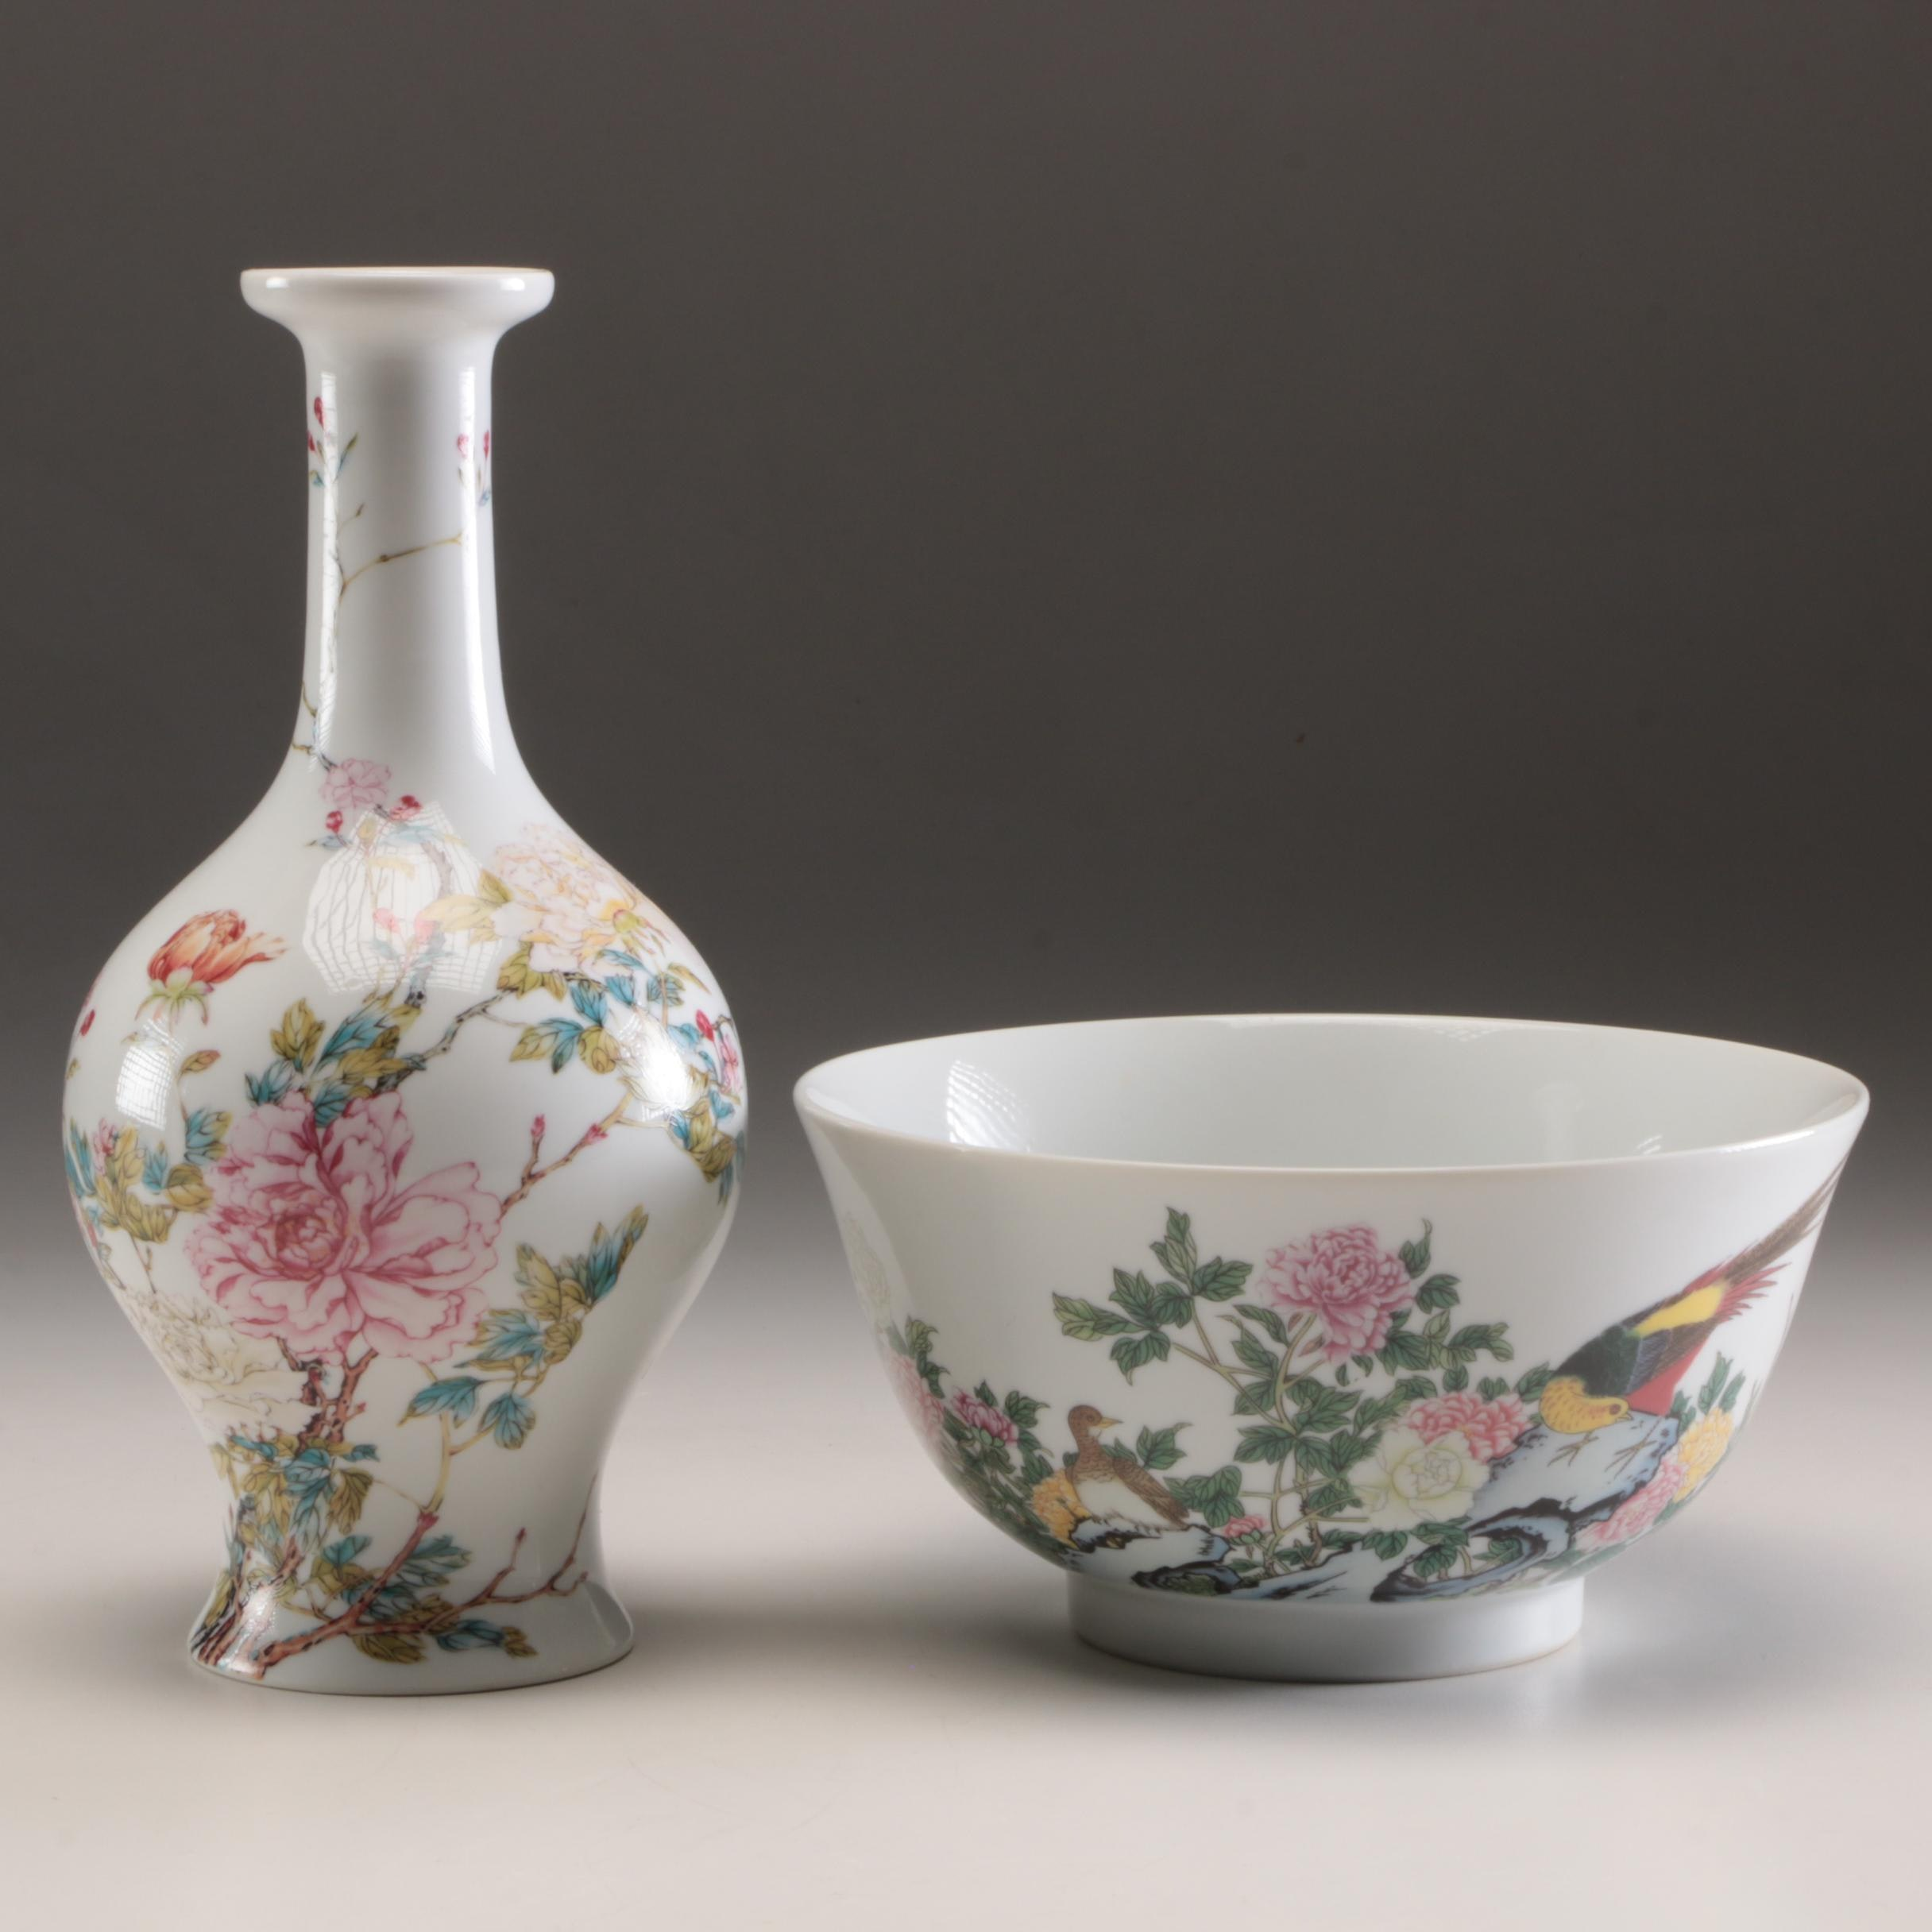 Lenox Chinese Inspired Porcelain Vase and Bowl